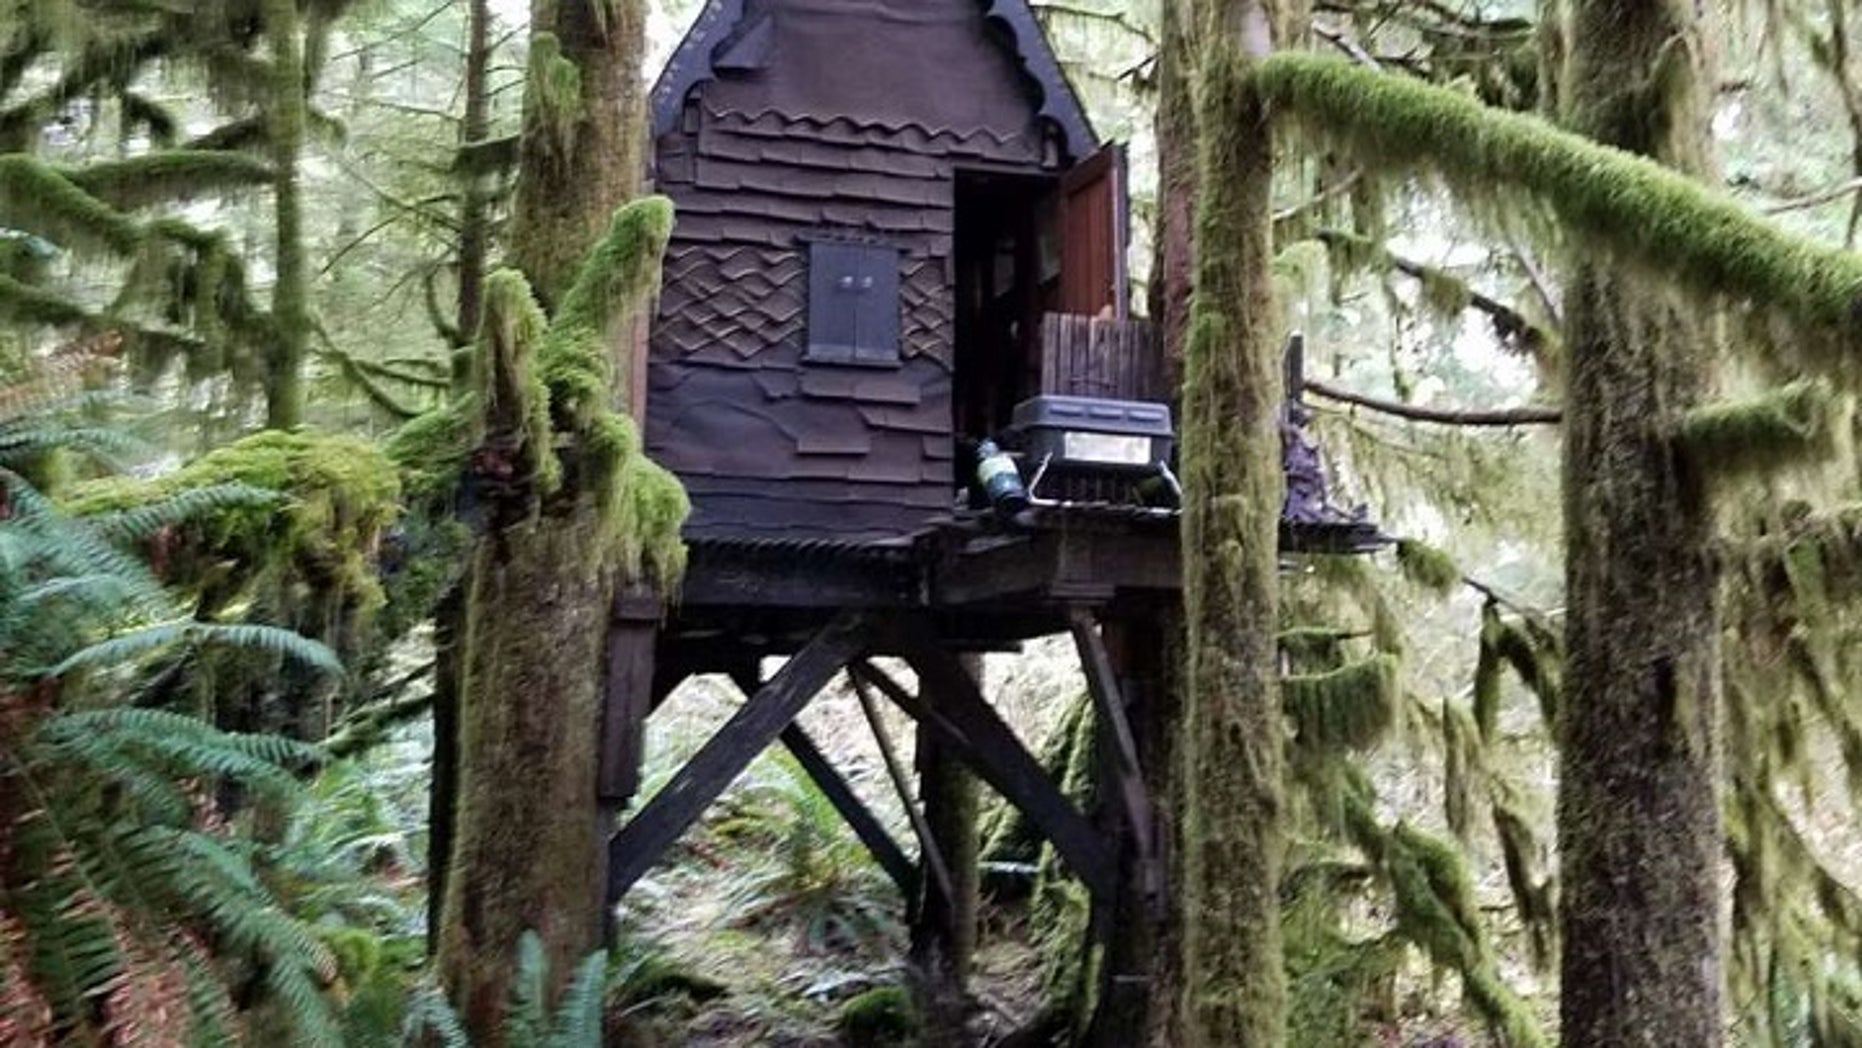 Authorities found a stash of child pornography in a remote cabin in a national forest.